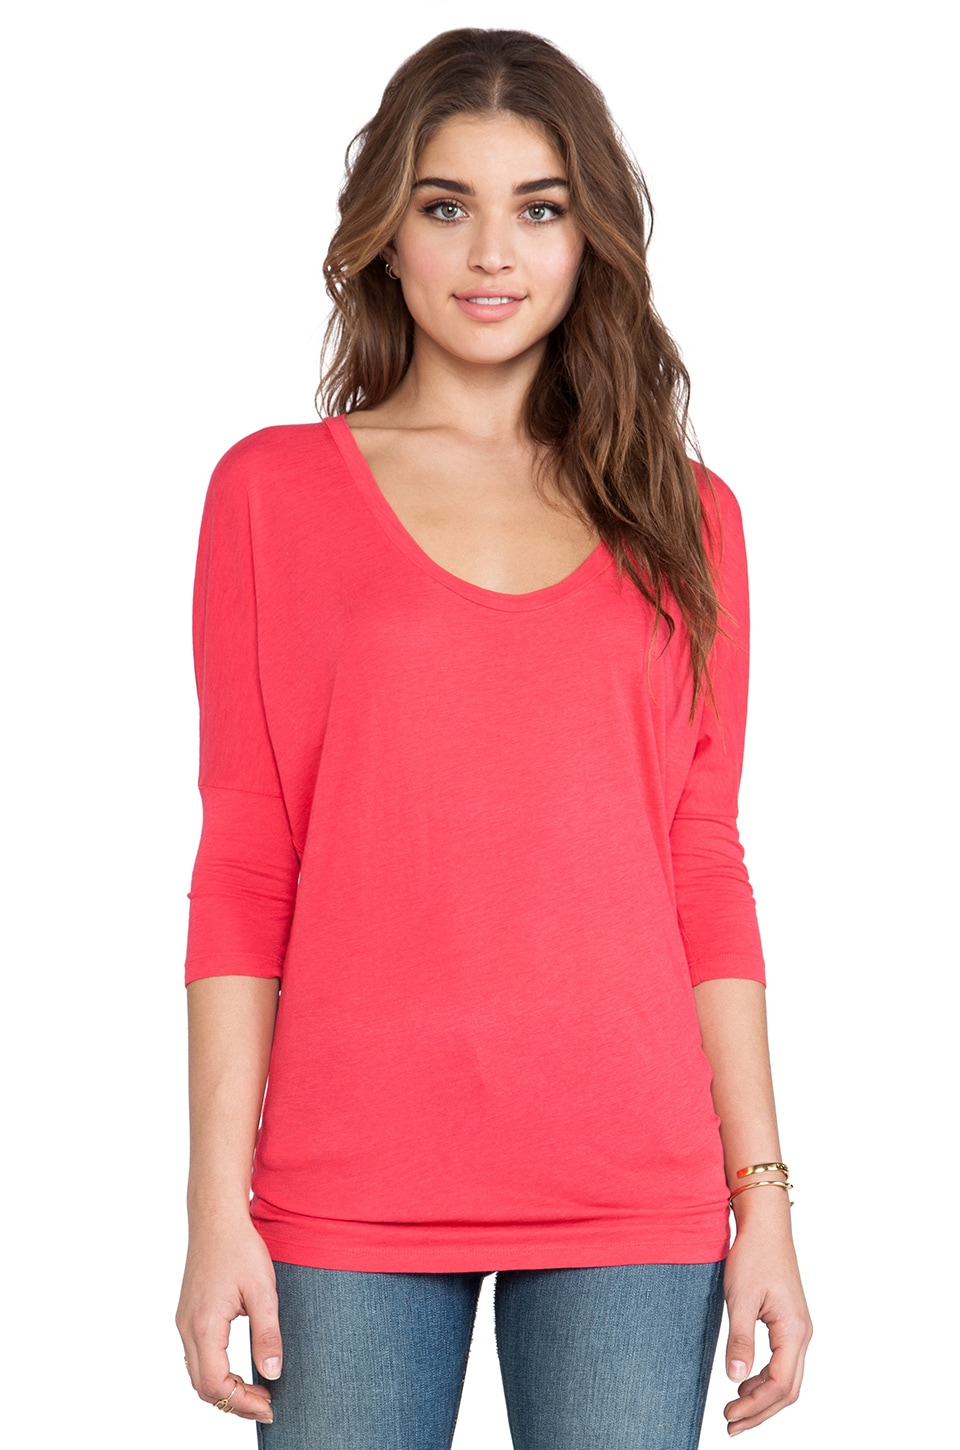 Bobi Slub Dolman Top in Berry Red